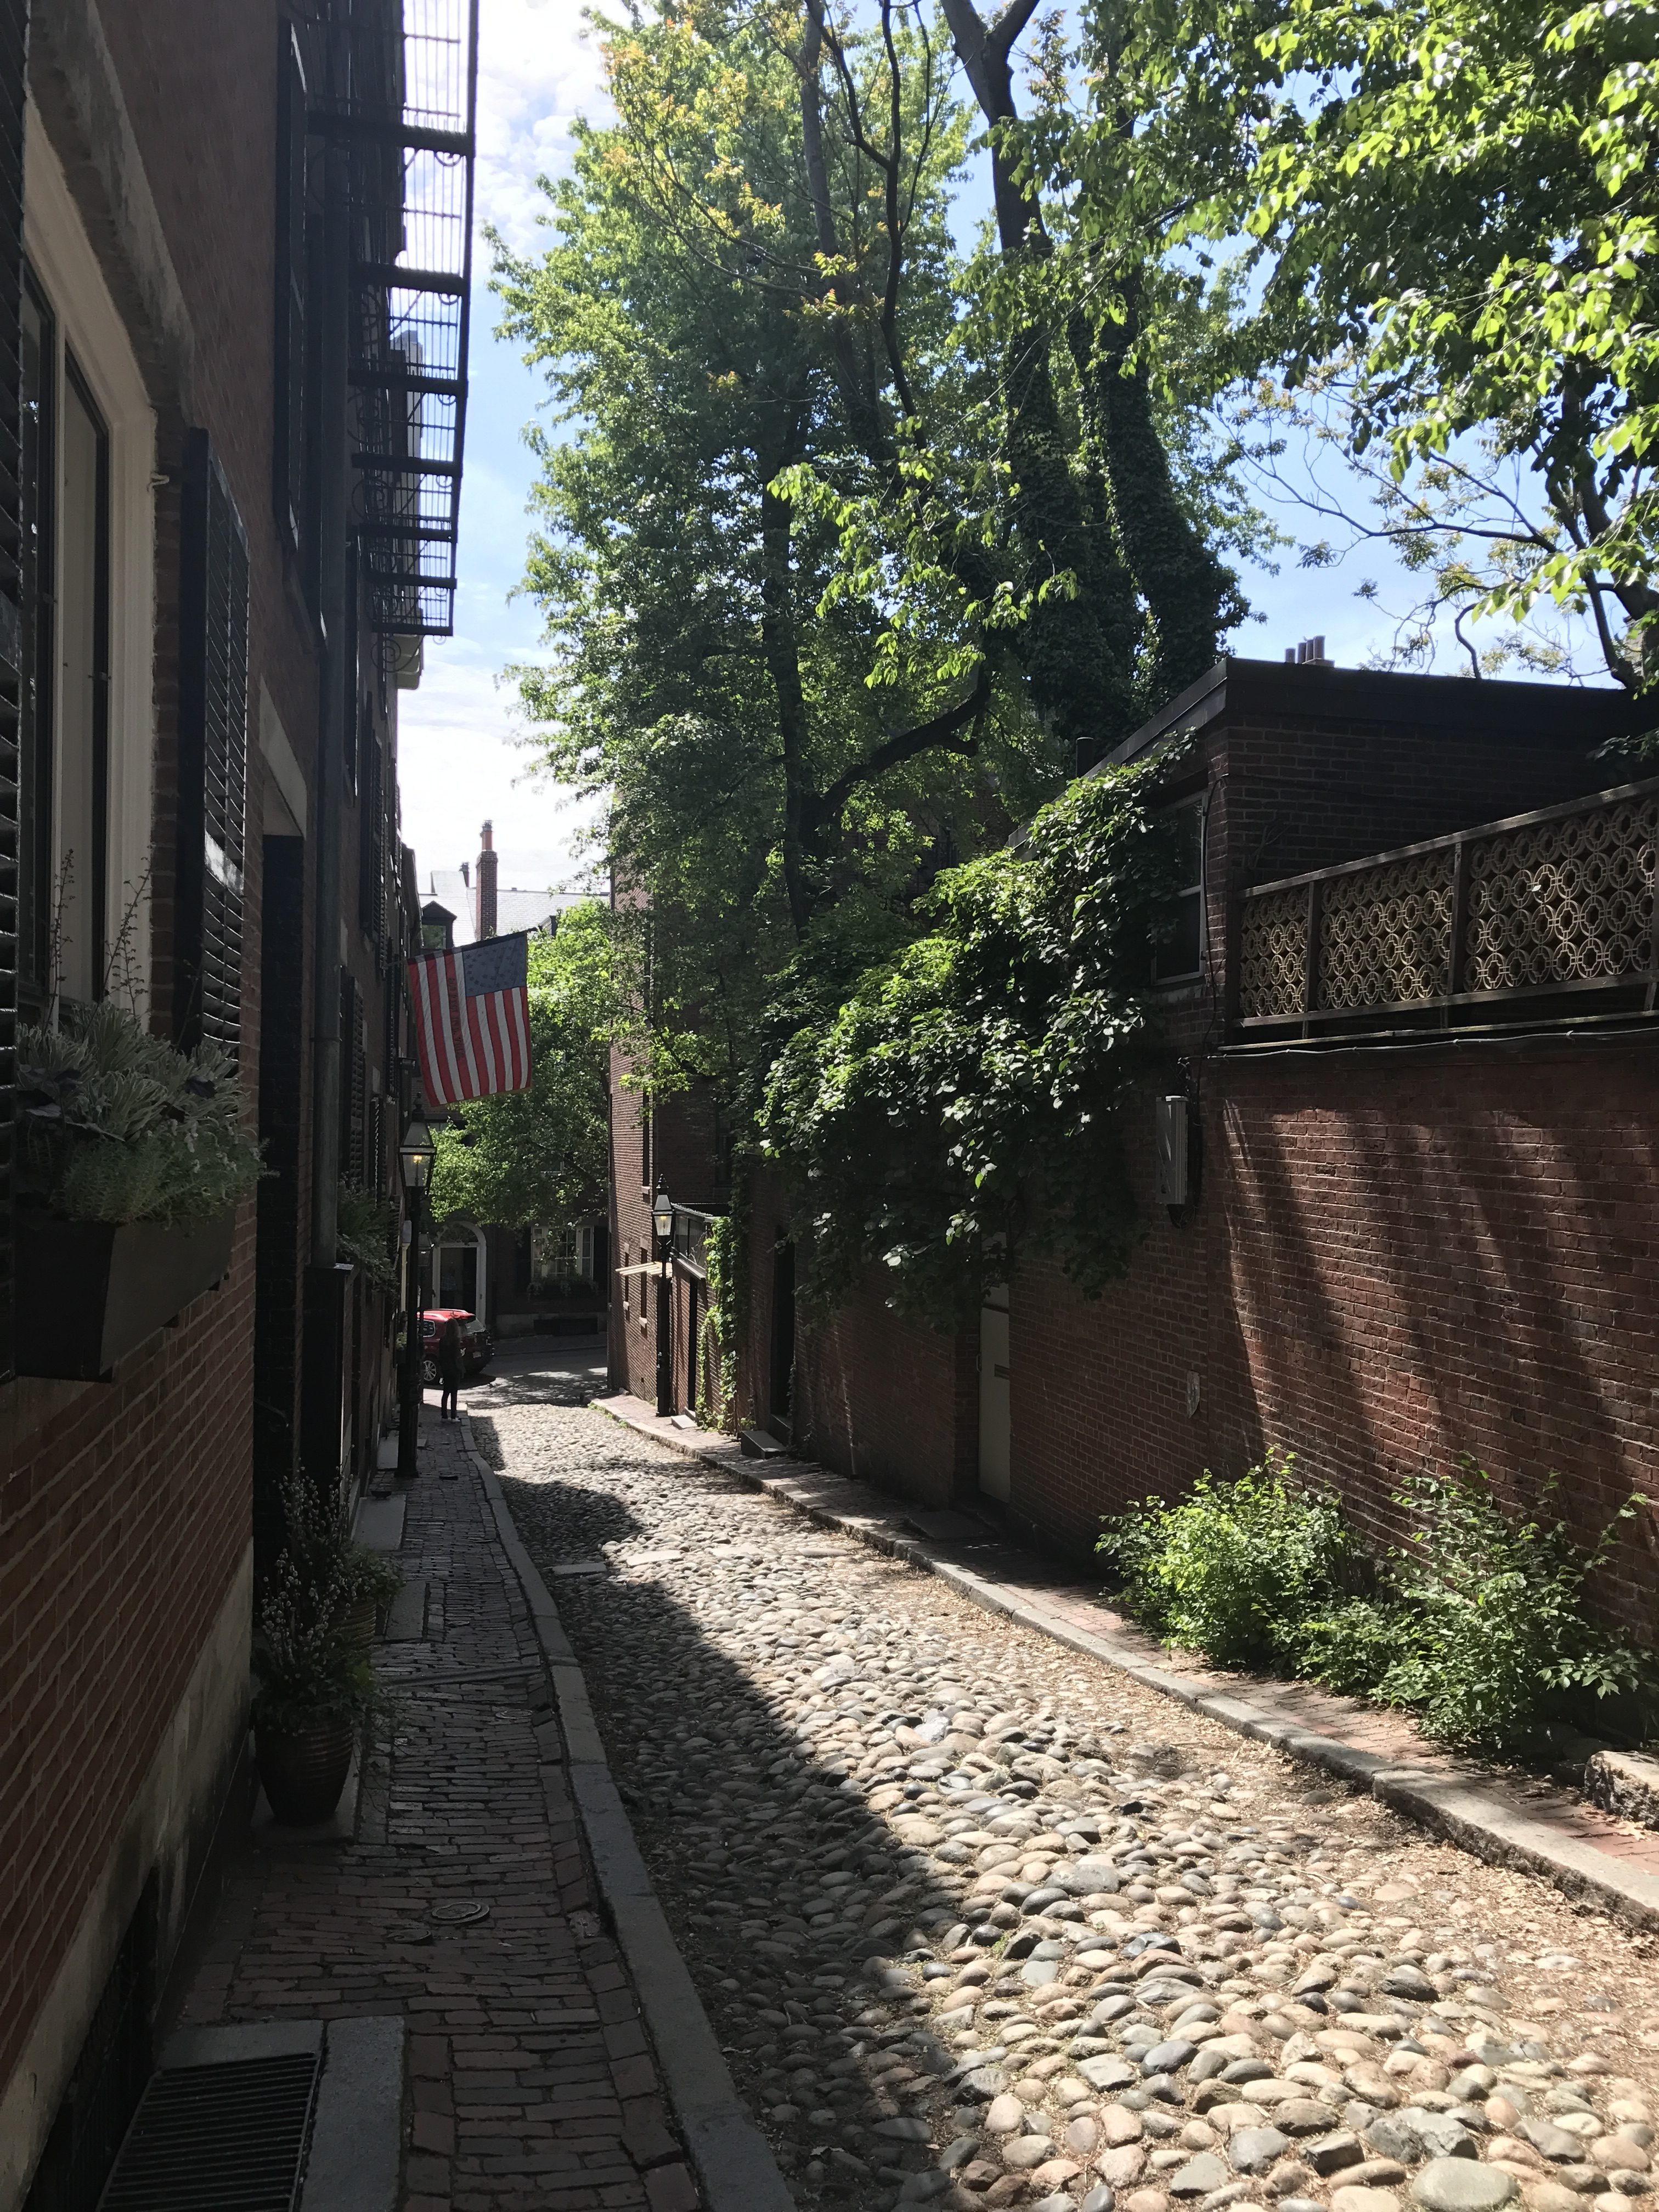 Acorn Street in Beacon Hill, Boston